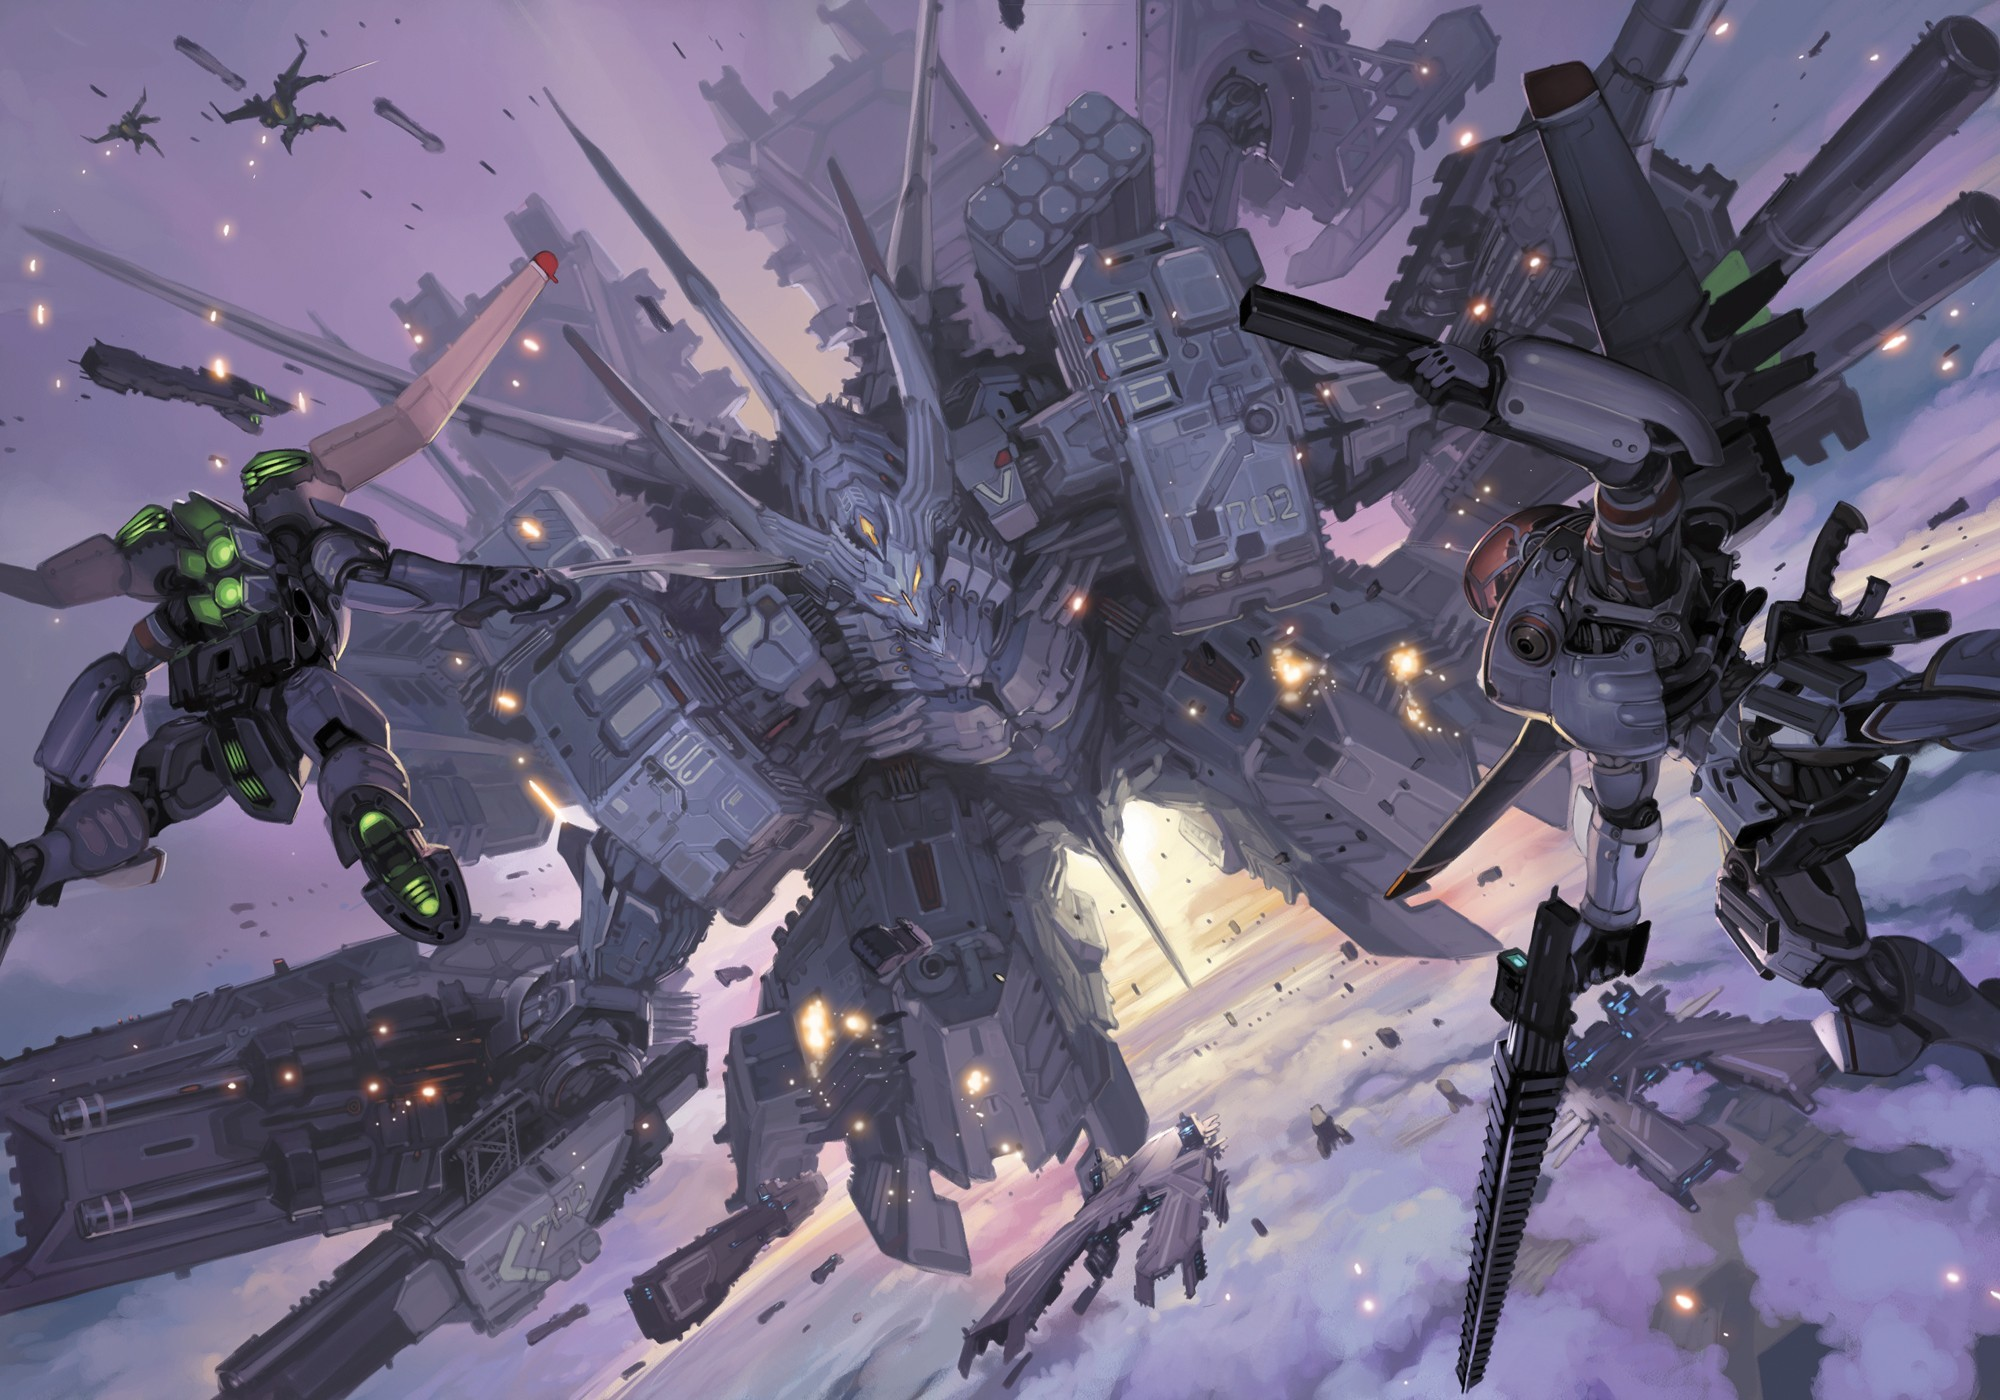 Guns robot mecha HD Wallpaper